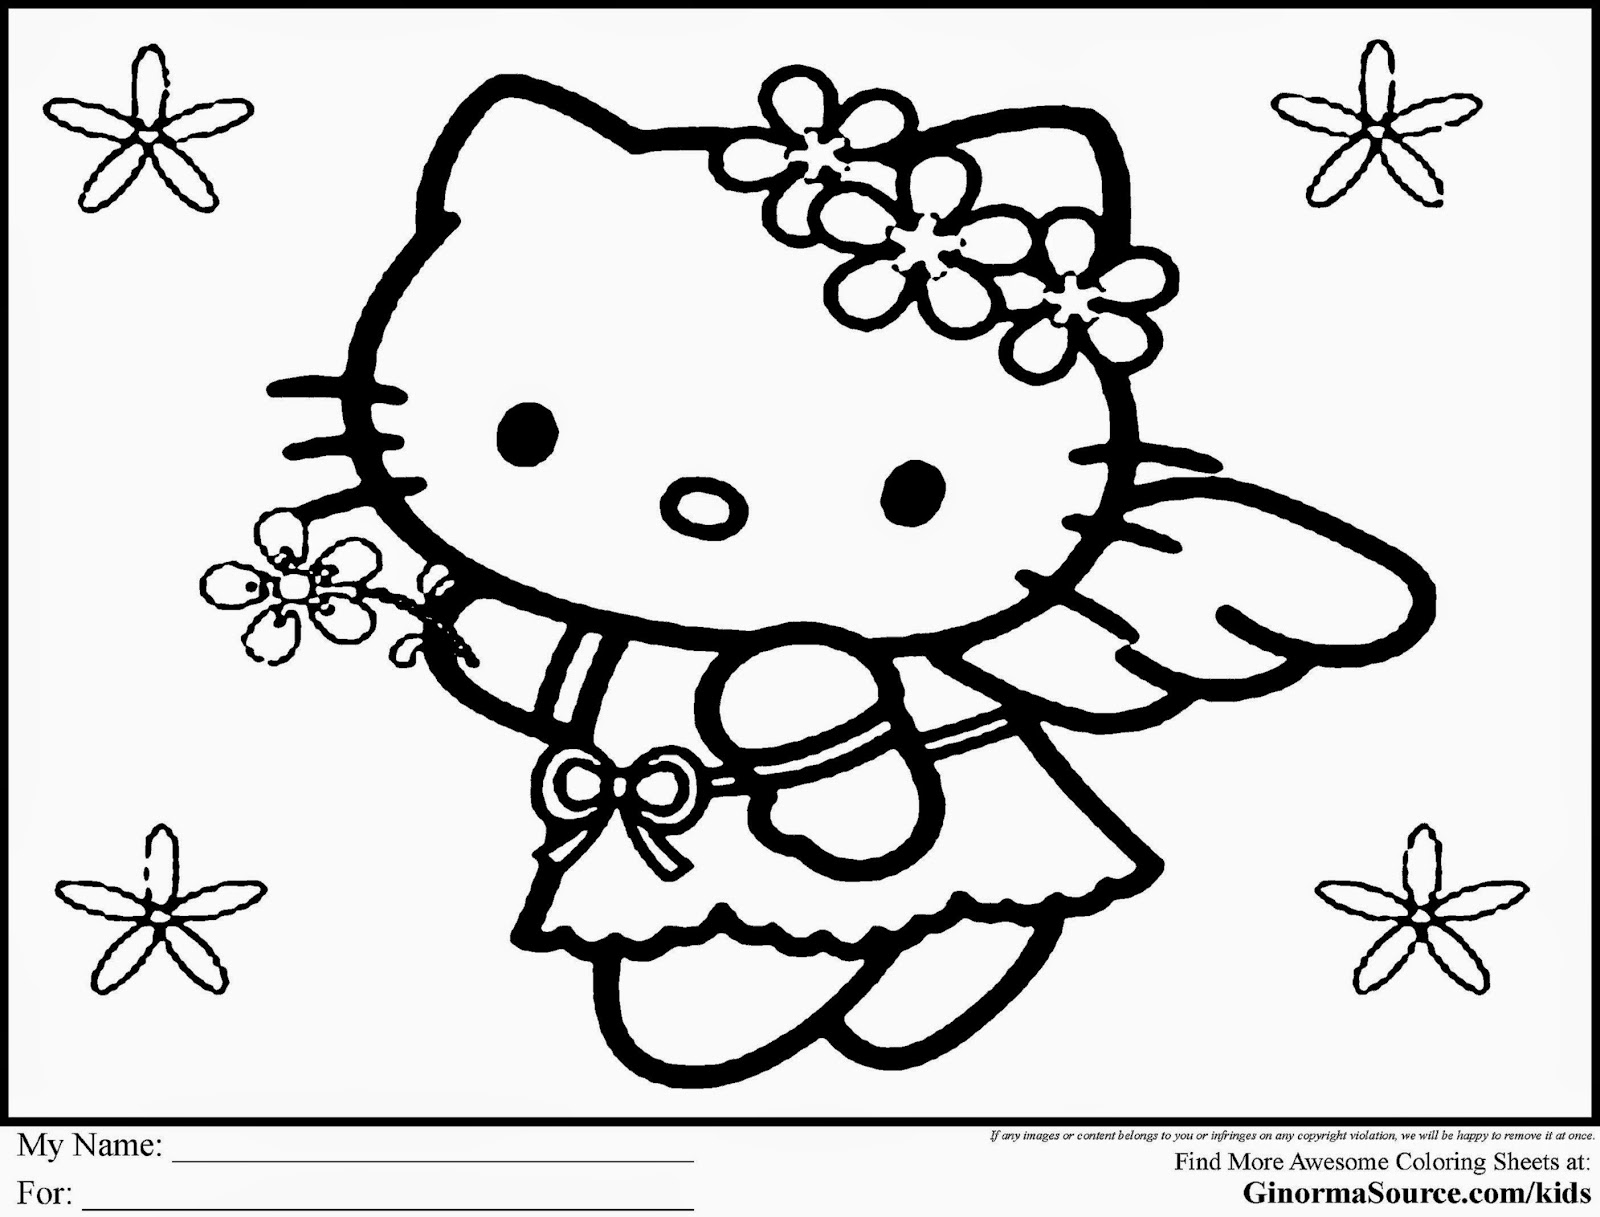 This is a photo of Peaceful Hello Kitty Coloring Images